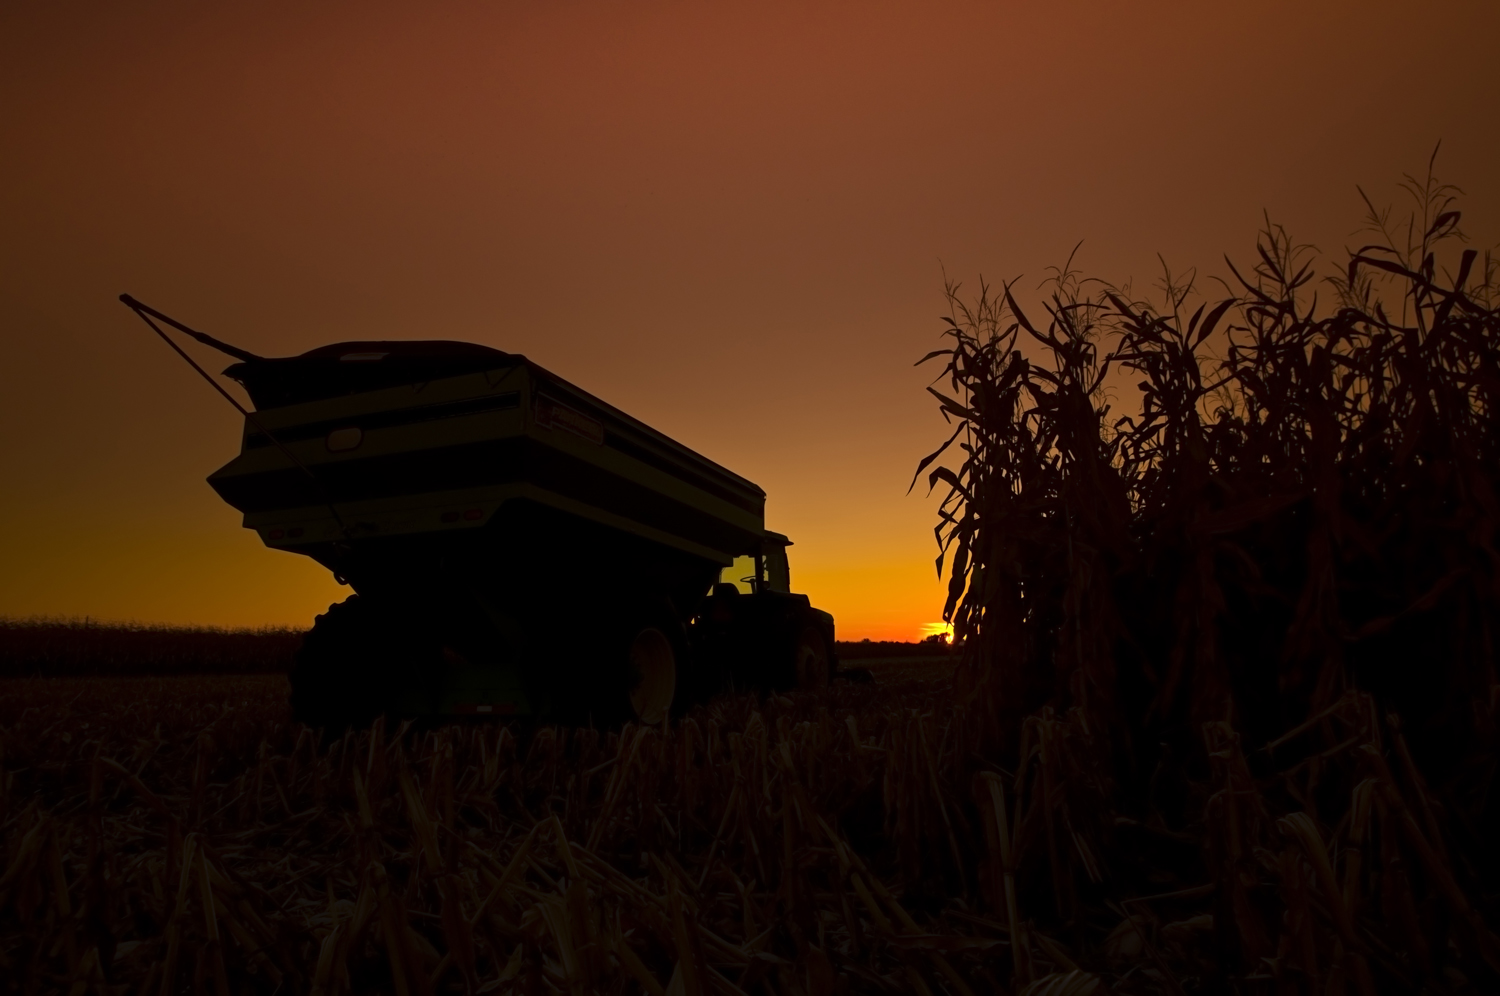 Filecorn Field And Tractor With Trailer At Sunset Jpg